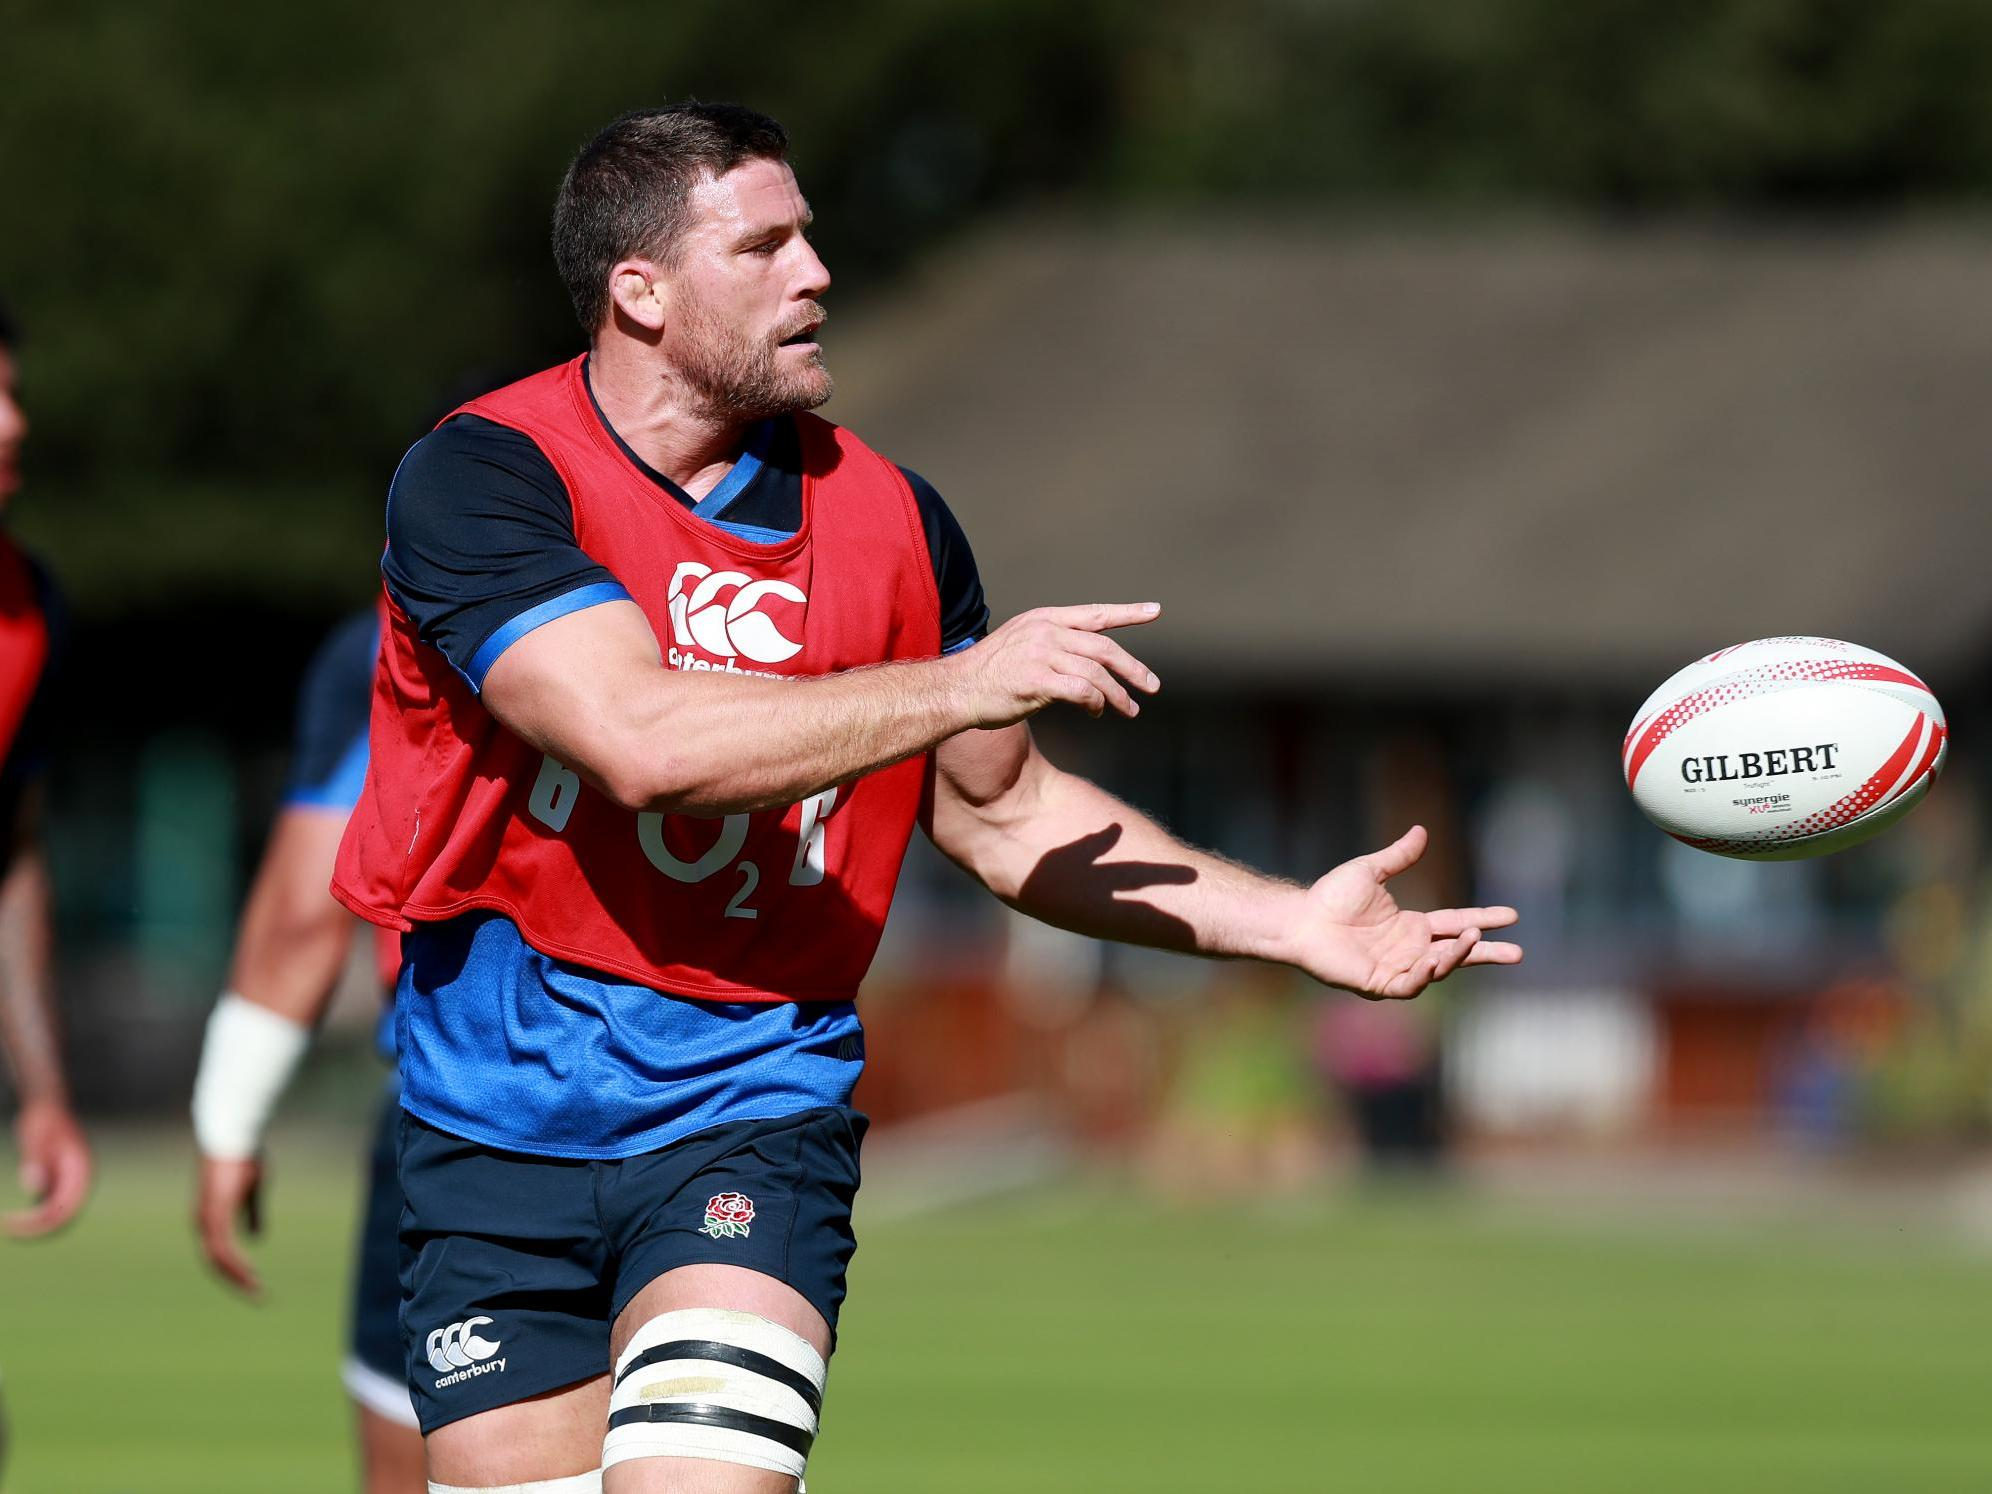 Rugby World Cup 2019: Mark Wilson joins Sale on loan from Newcastle as James Phillips signs extension